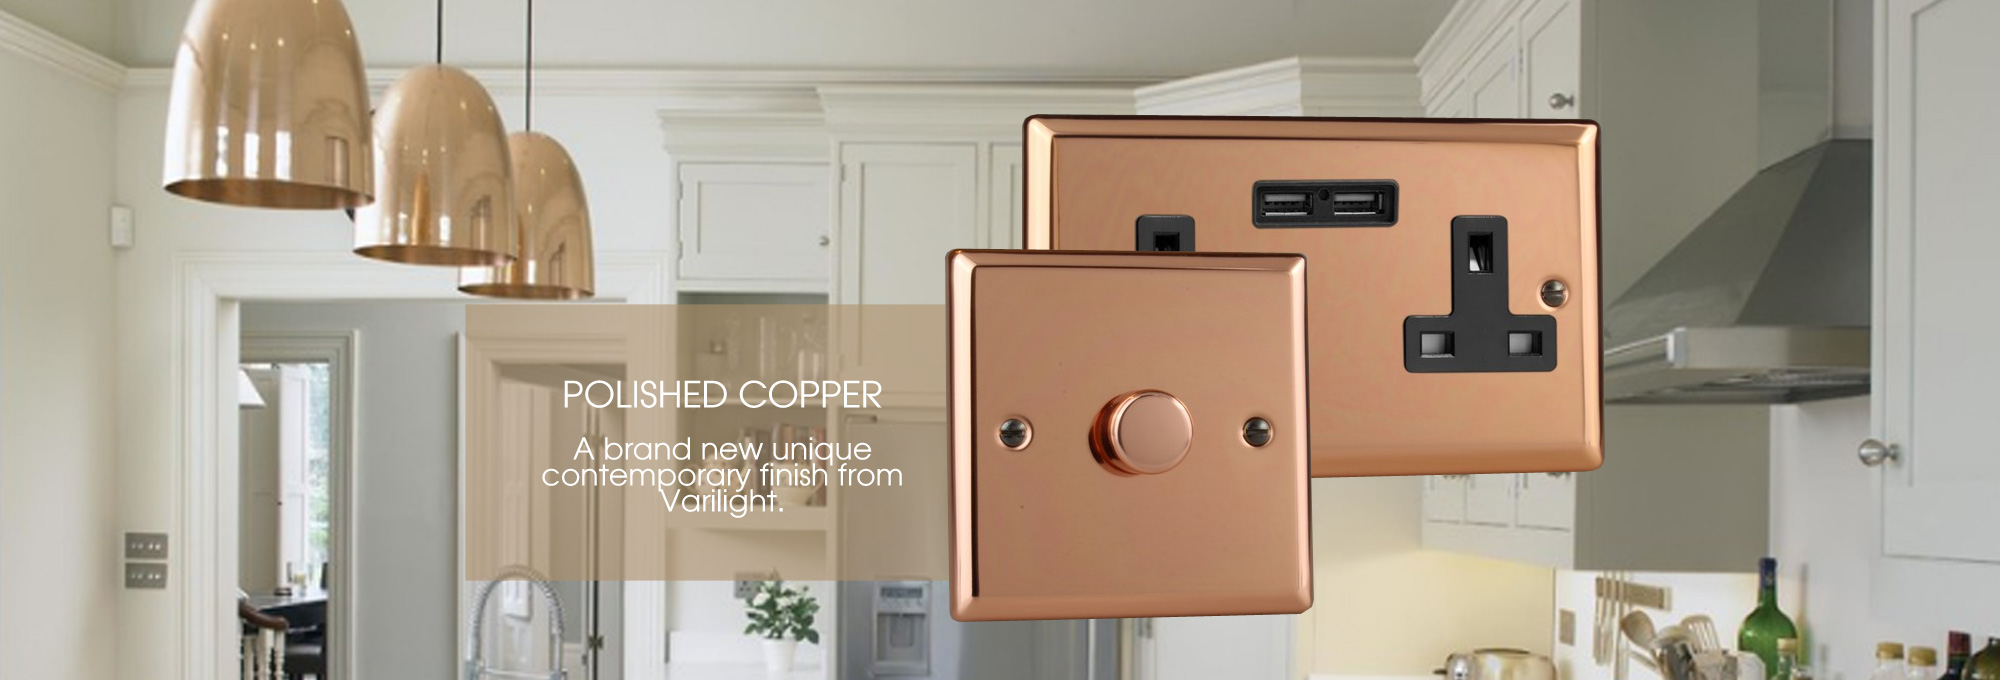 New Polished Copper Range